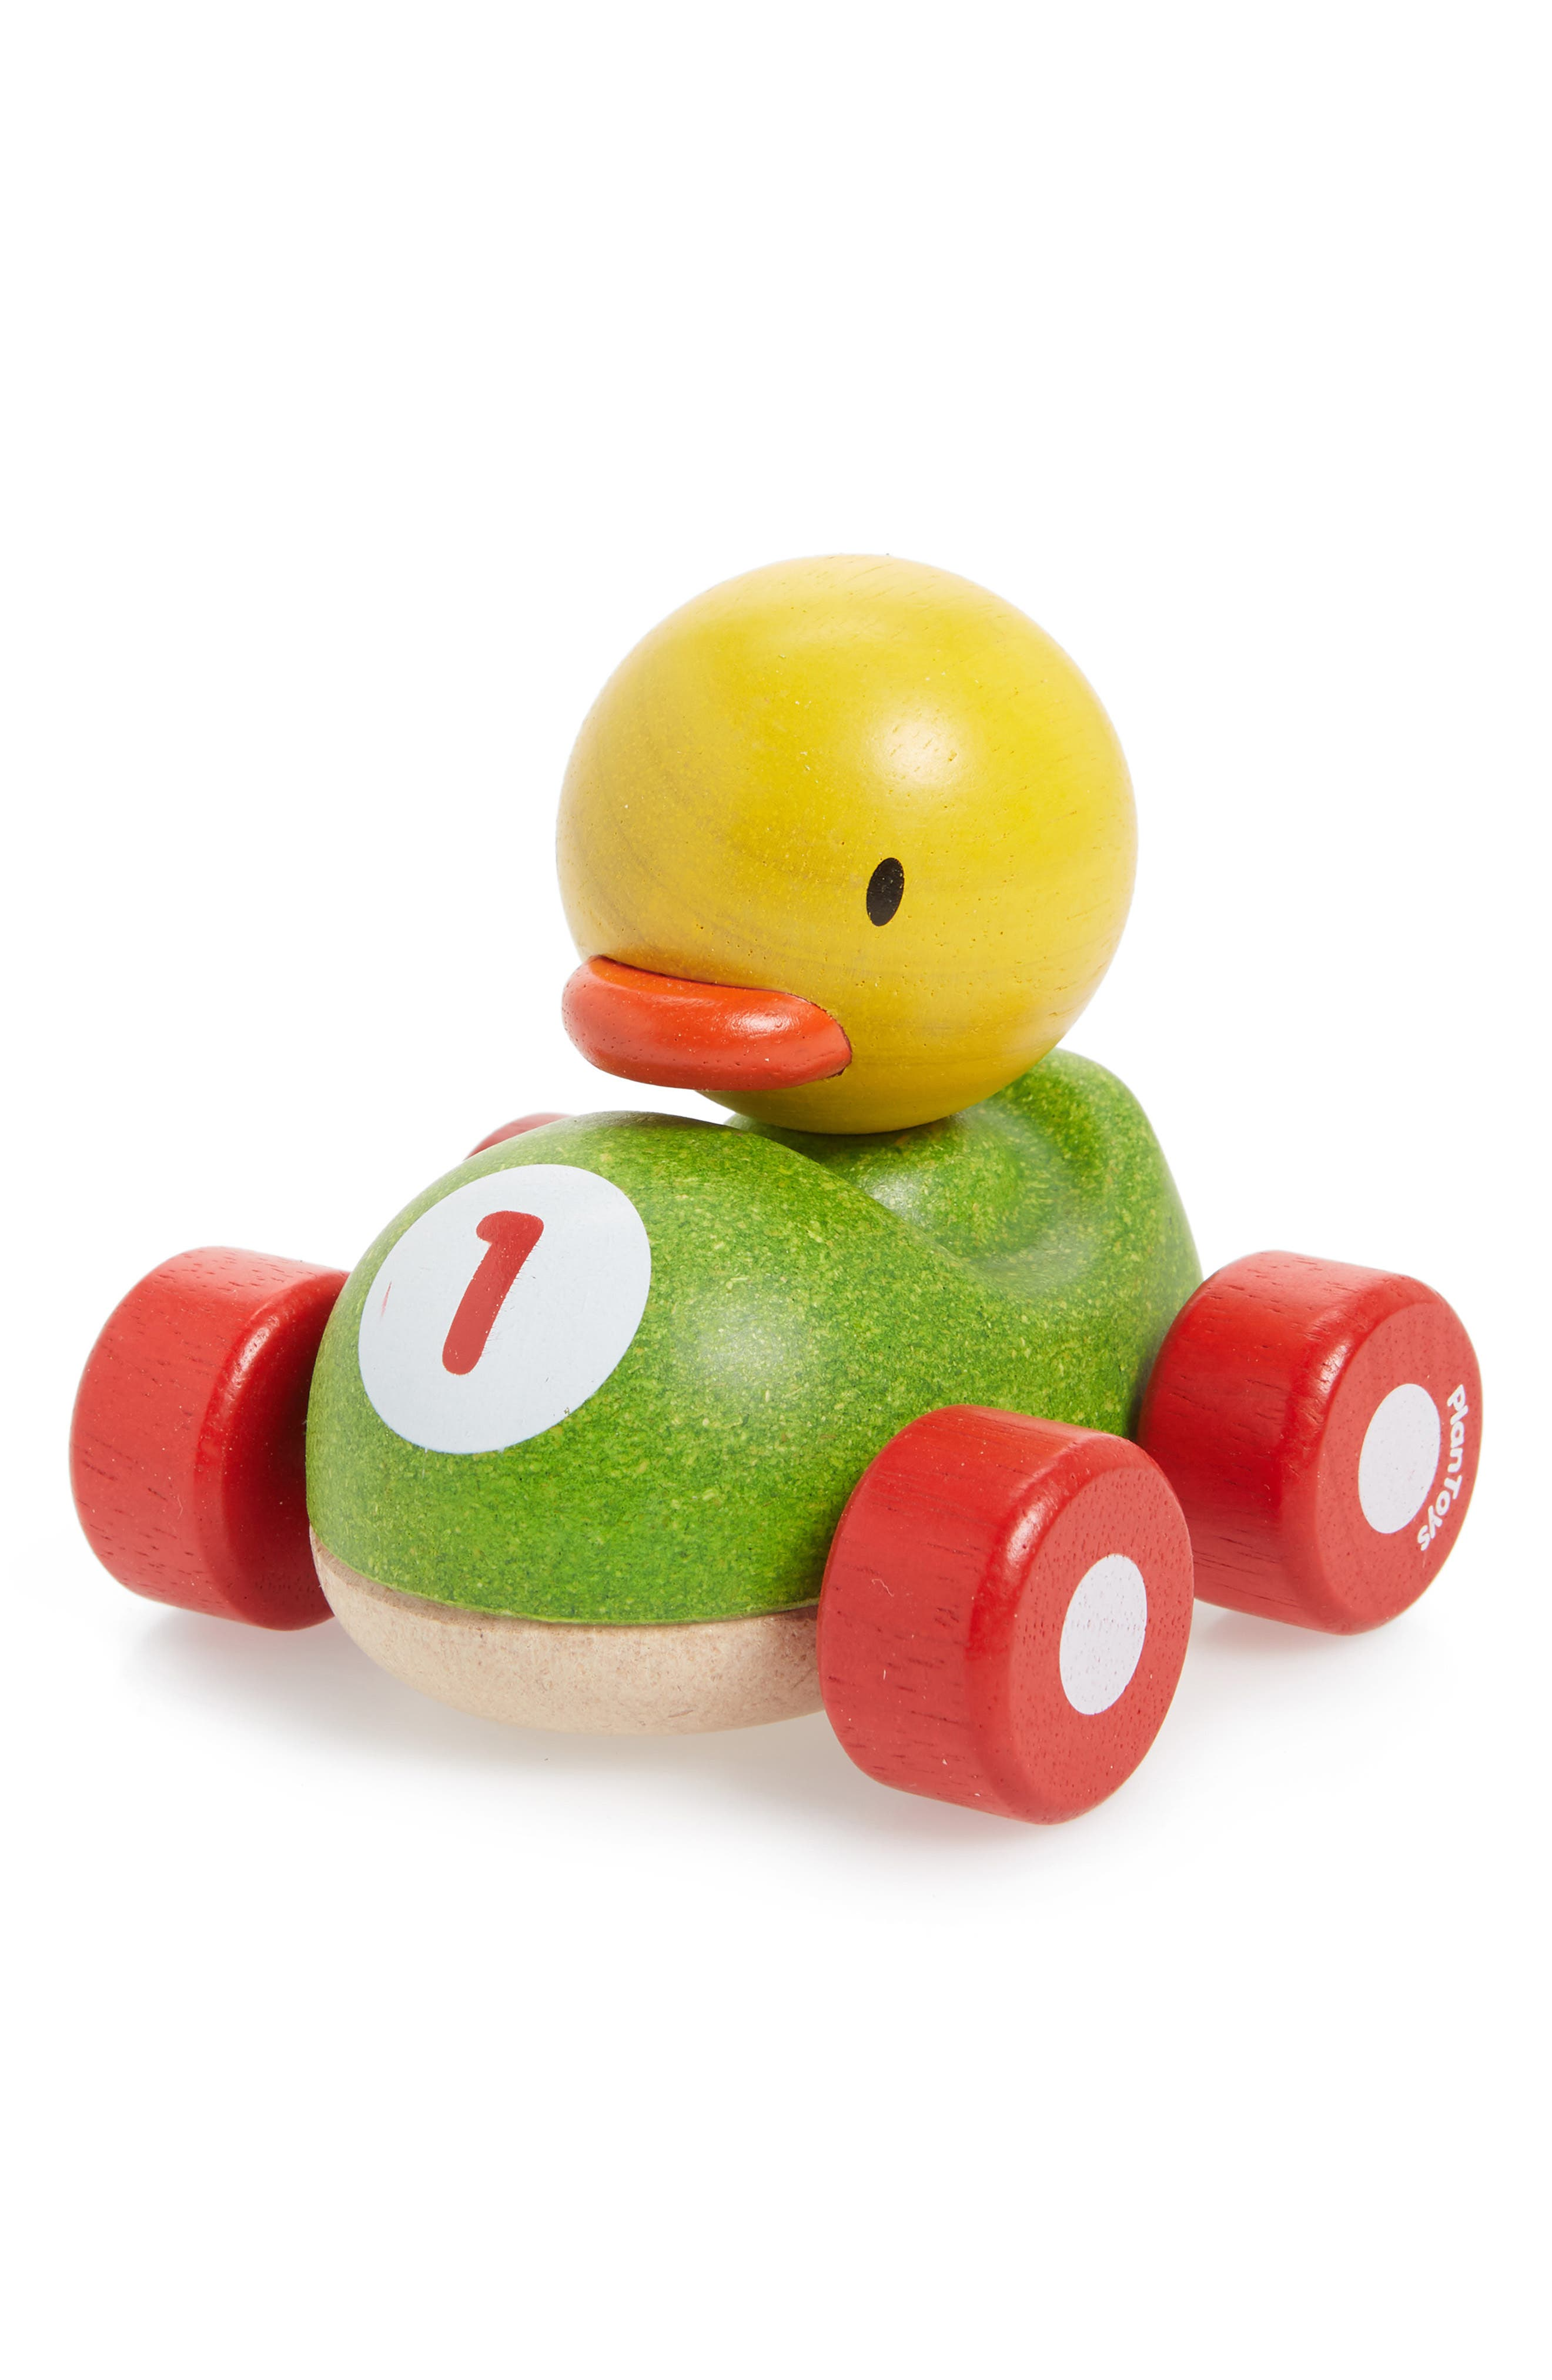 Plan Toys<sup>®</sup> Duck Racer Rolling Toy,                         Main,                         color, Multi